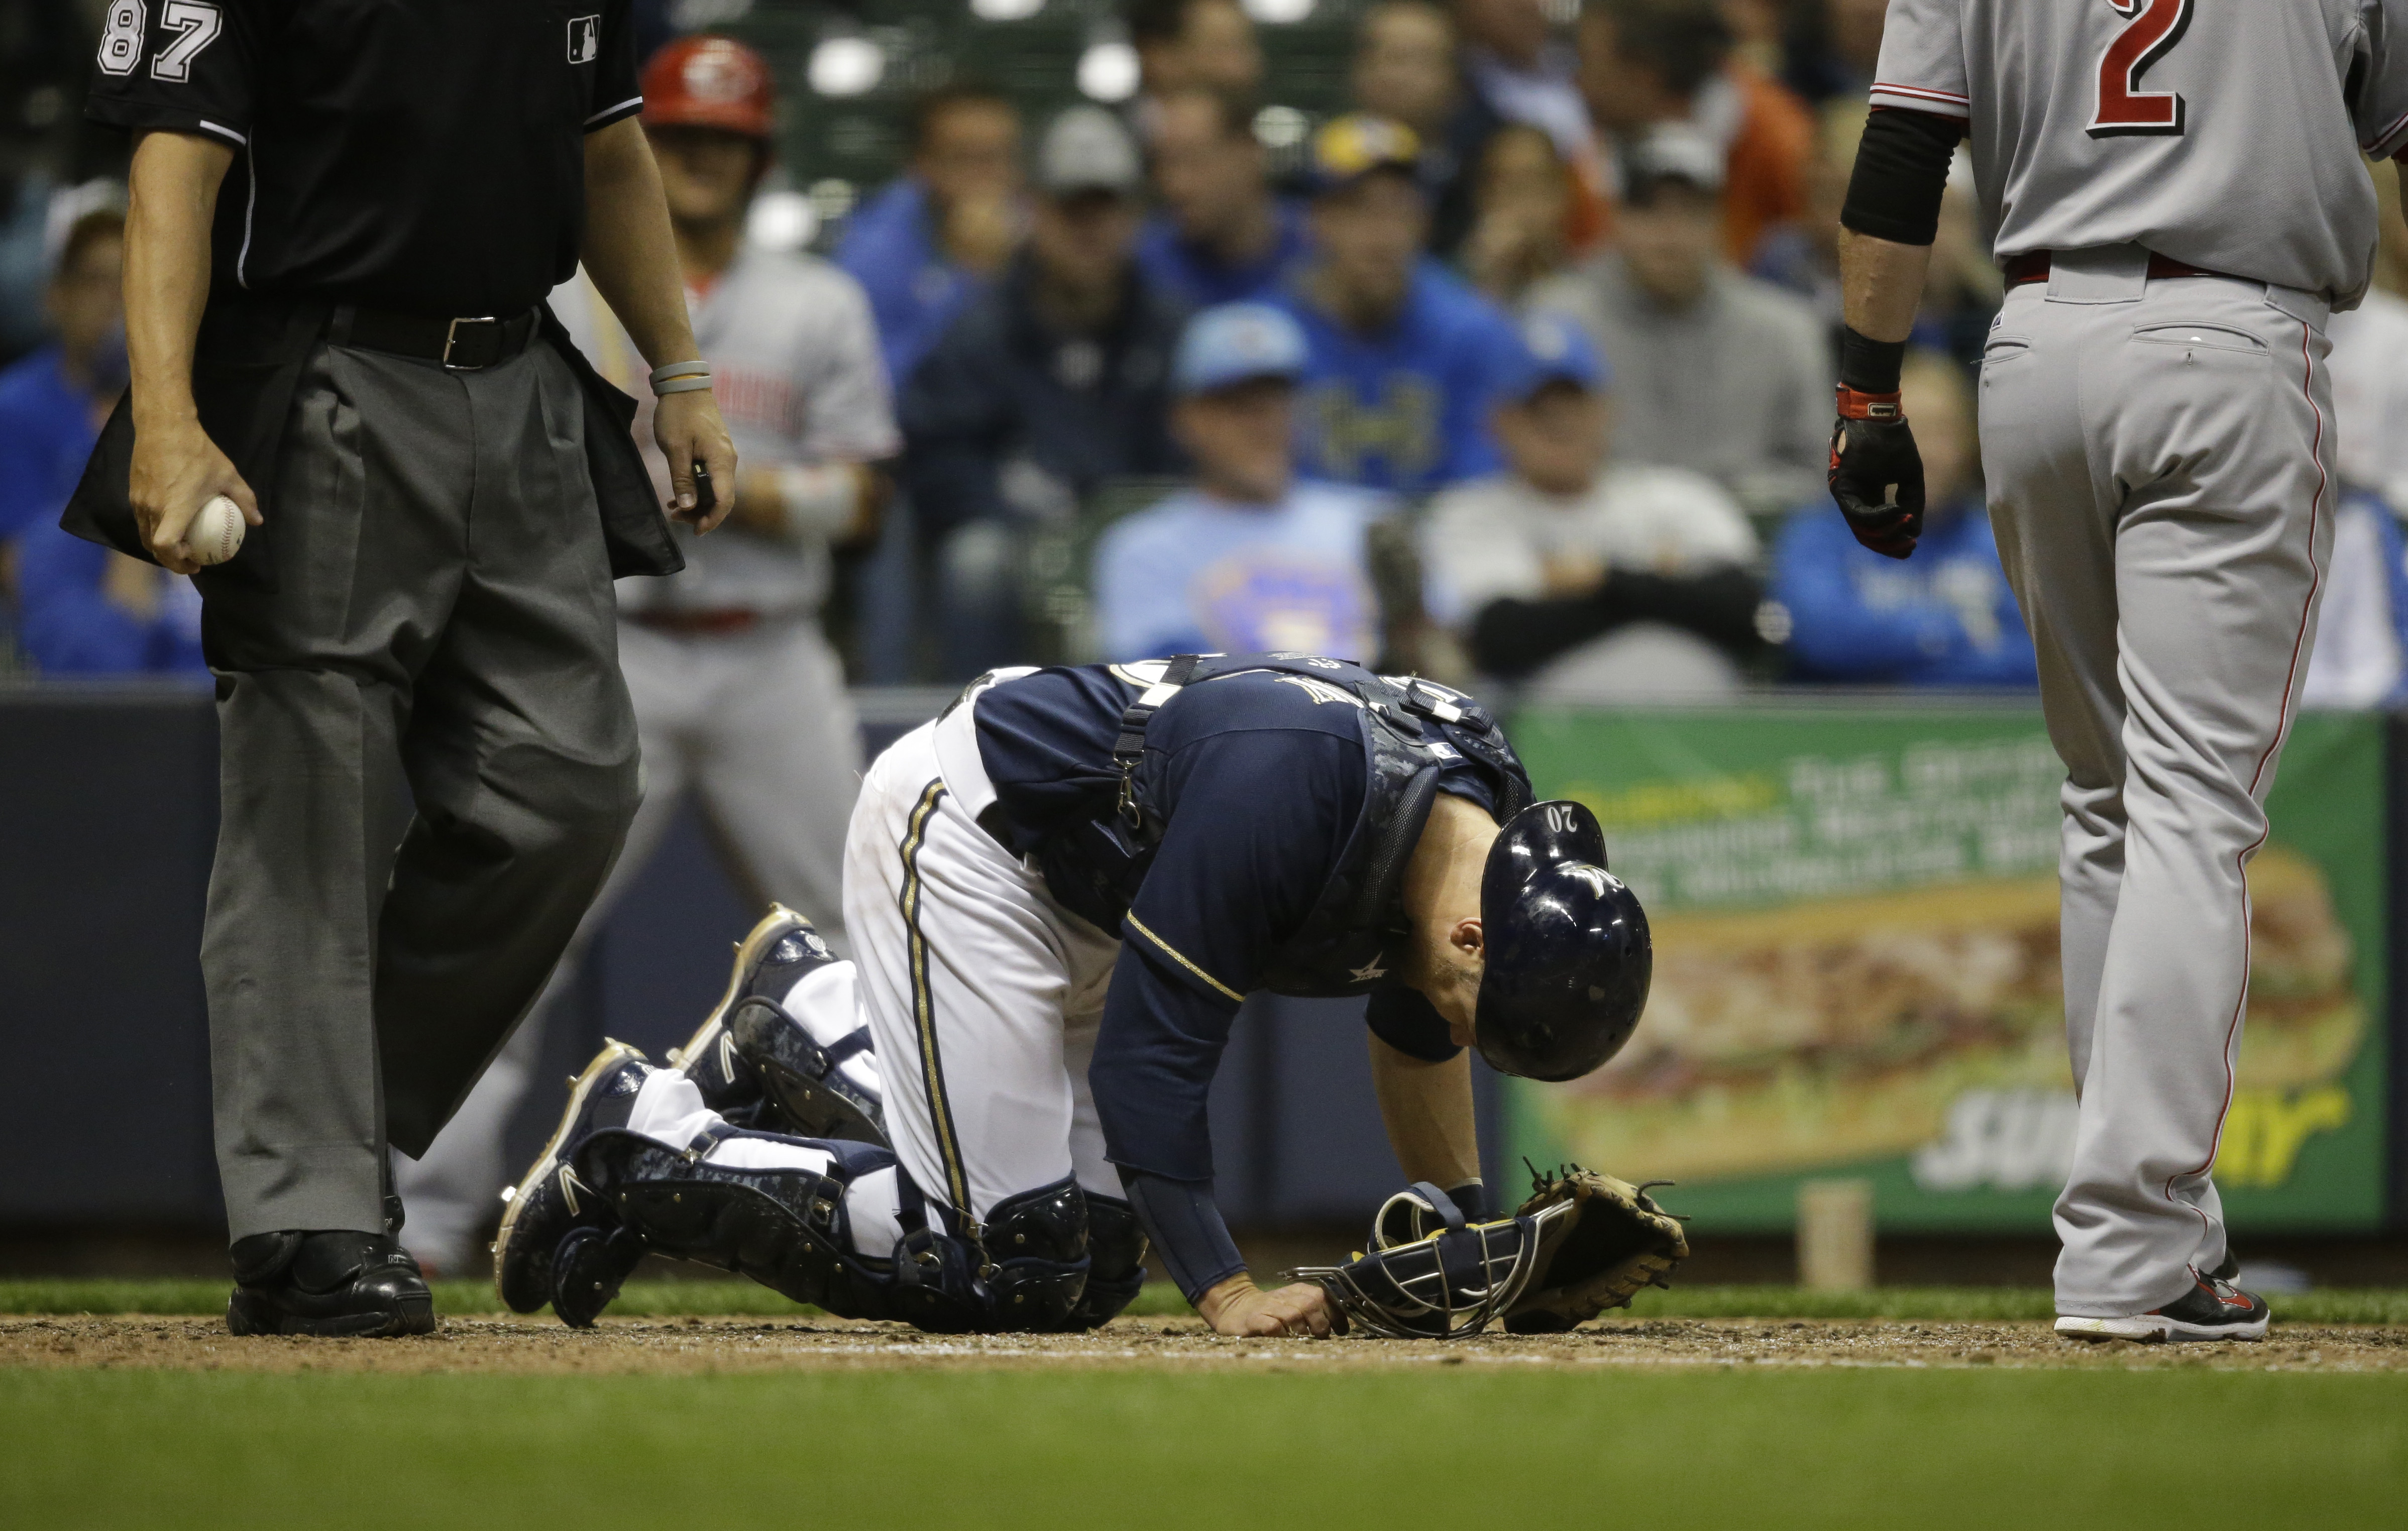 Milwaukee Brewers catcher Jonathan Lucroy bends over after taking a foul tip off his toe during the sixth inning of a baseball game  against the Cincinnati Reds Monday, April 20, 2015, in Milwaukee. Lucroy left the game and the Brewers announced after the